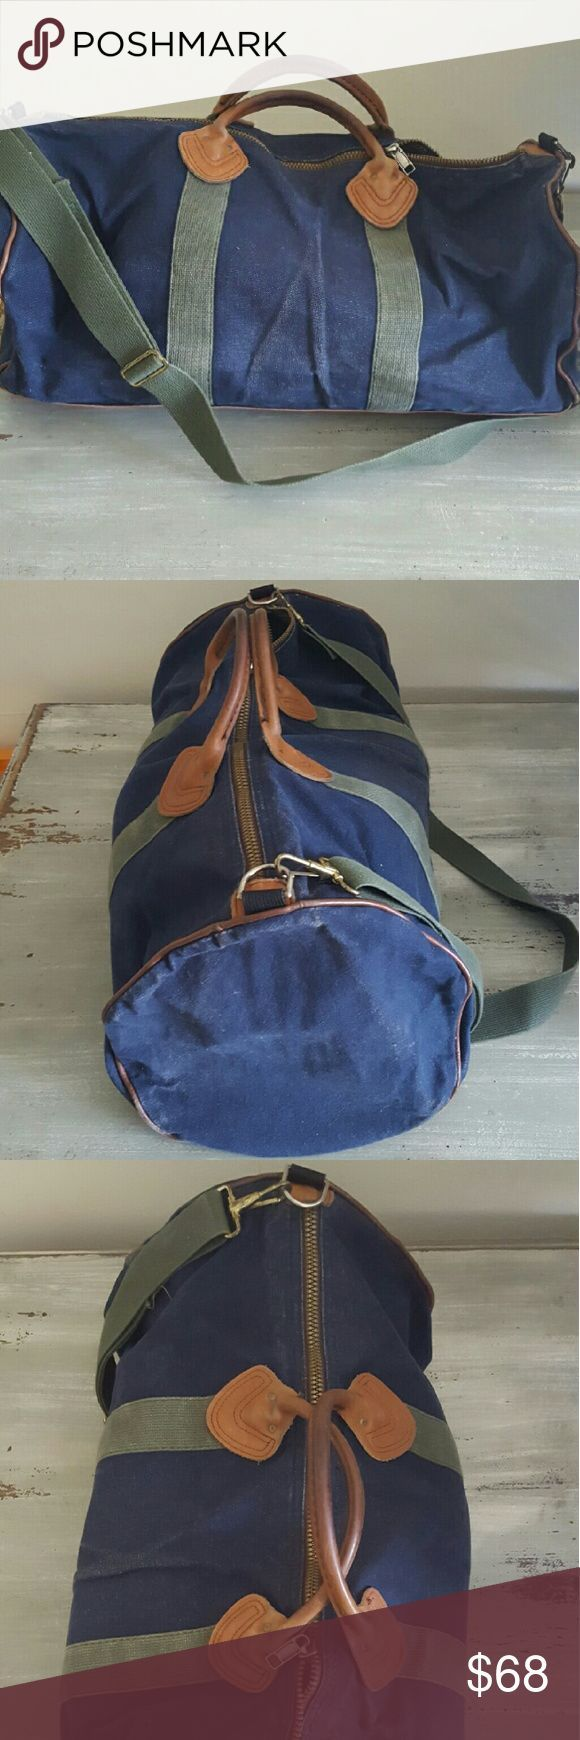 Vintage LLBean duffle bag Blue denim and leather duffle bag with strap LL Bean Vintage LLBean duffle bag Blue denim and leather duffle bag with strap LL Bean